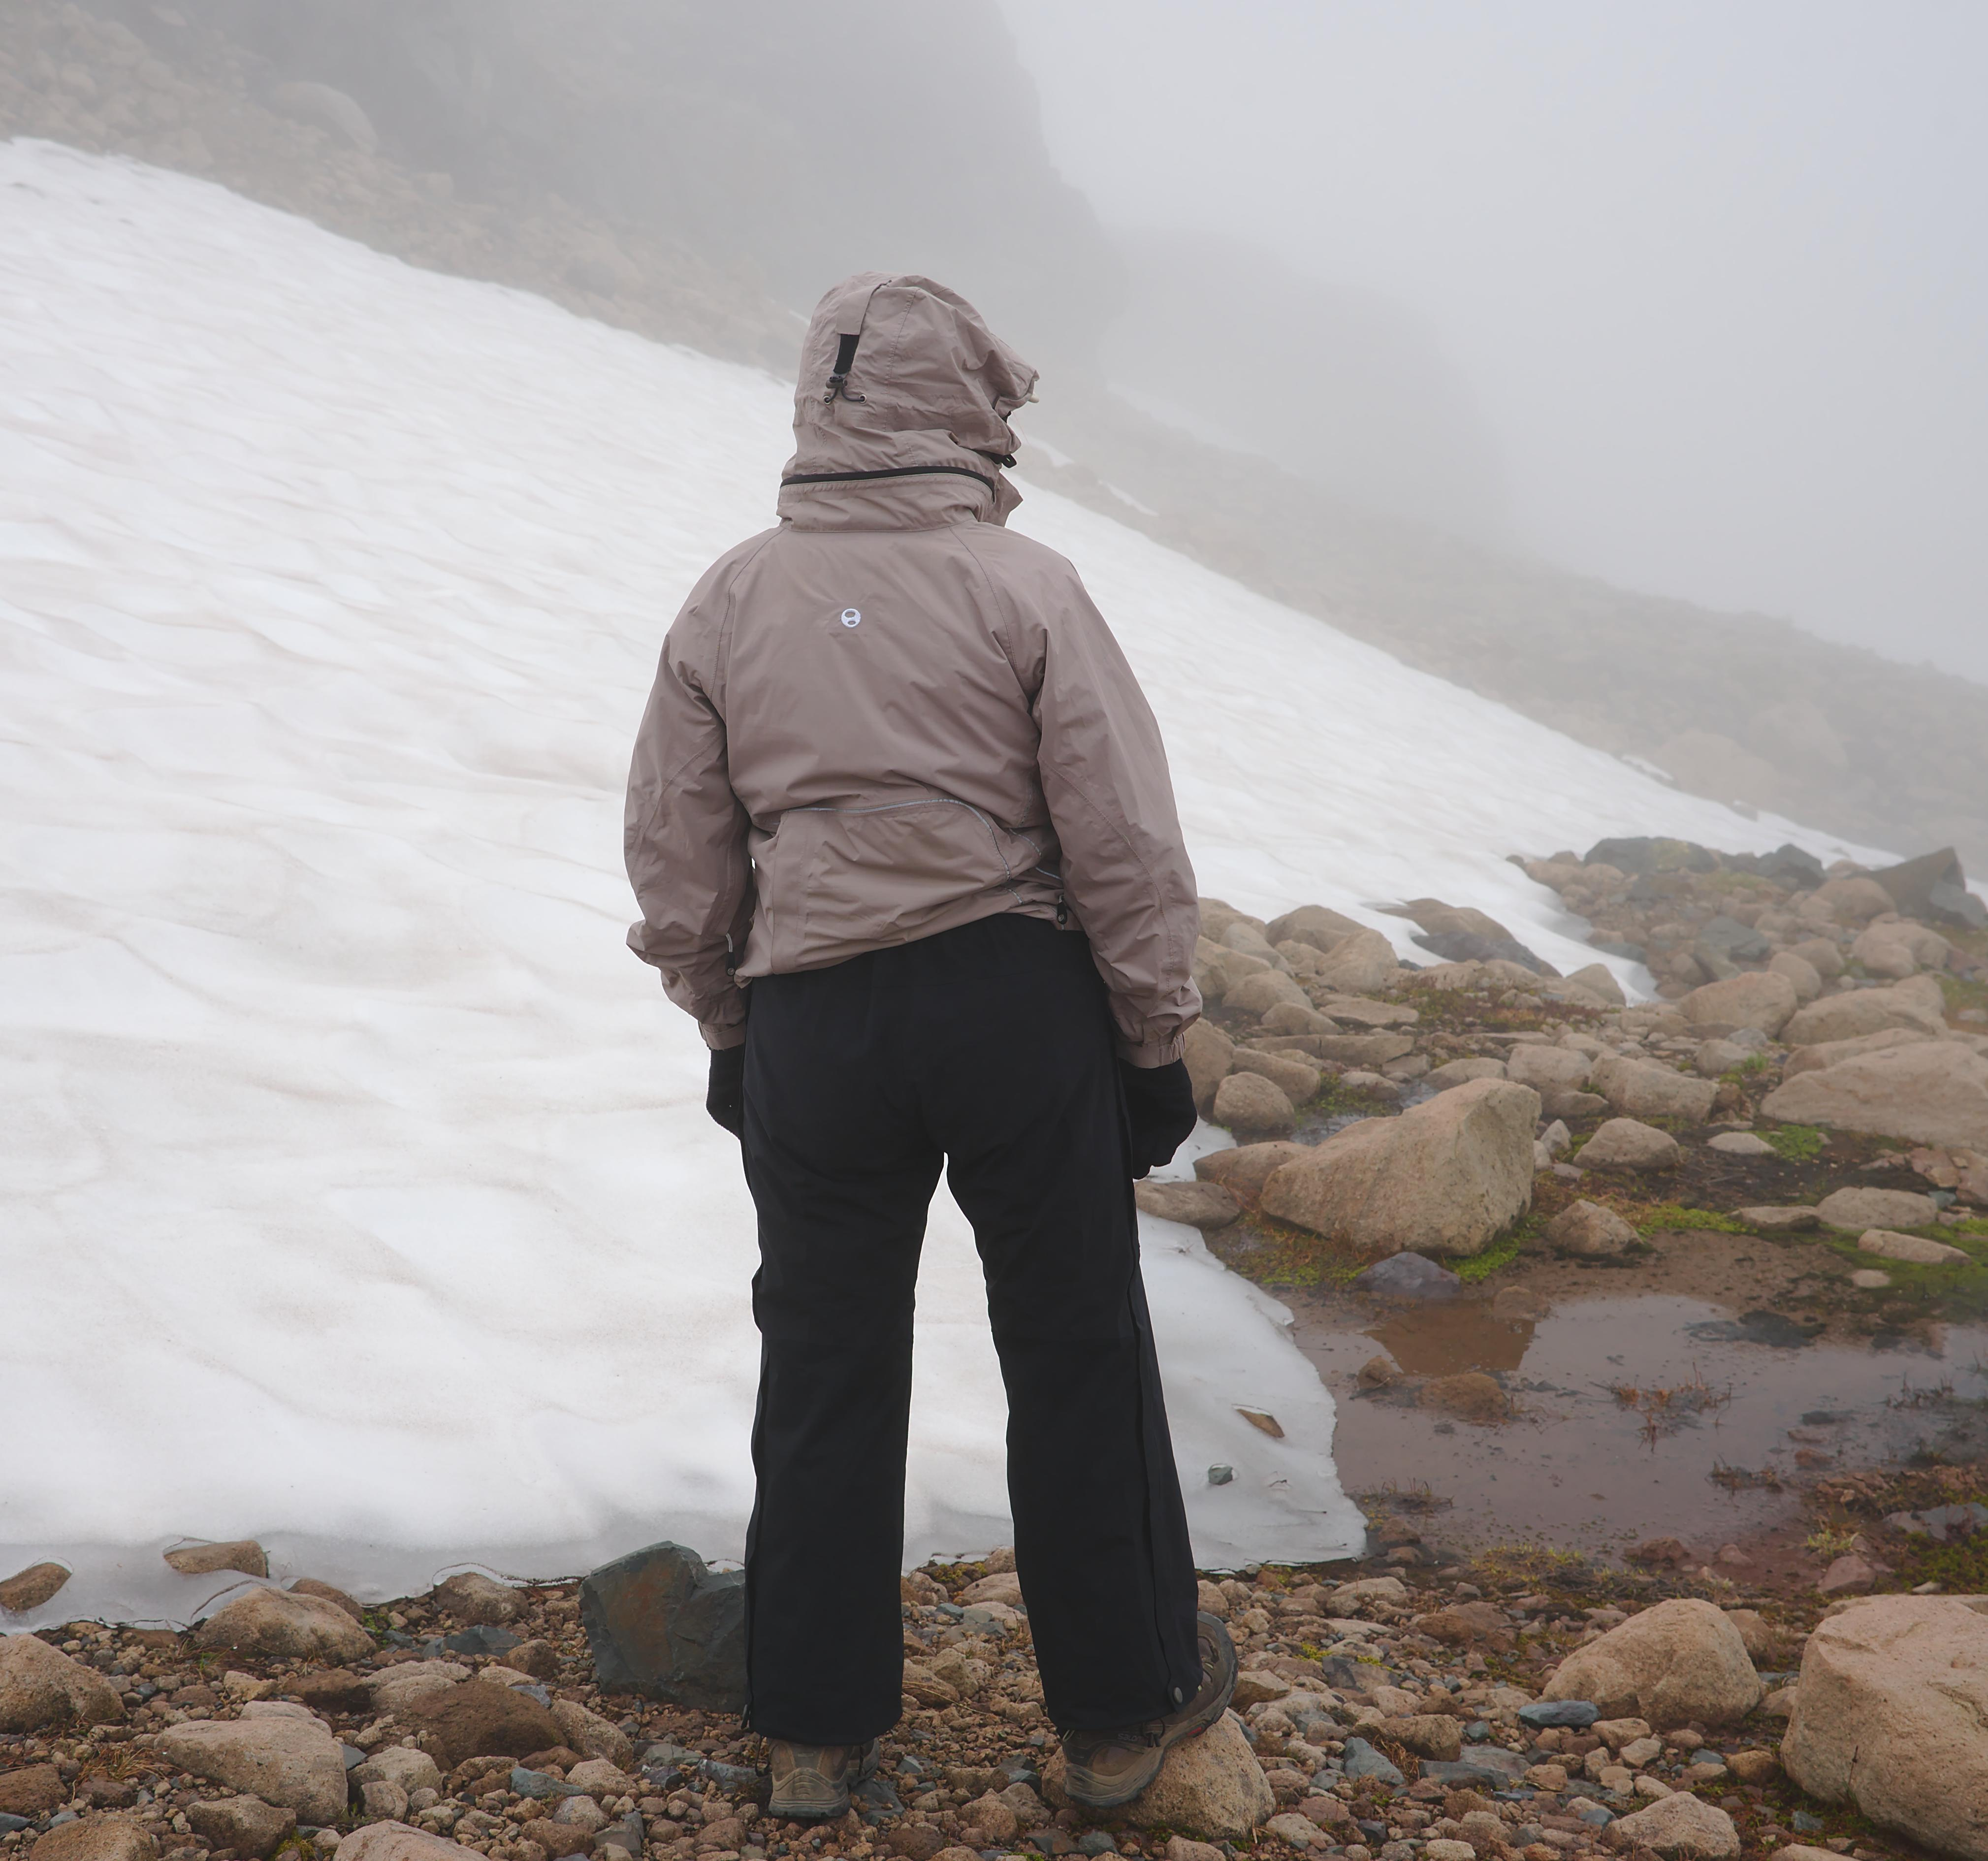 Female hiker wearing rain jacket and rain pants in fog on a mountain slope